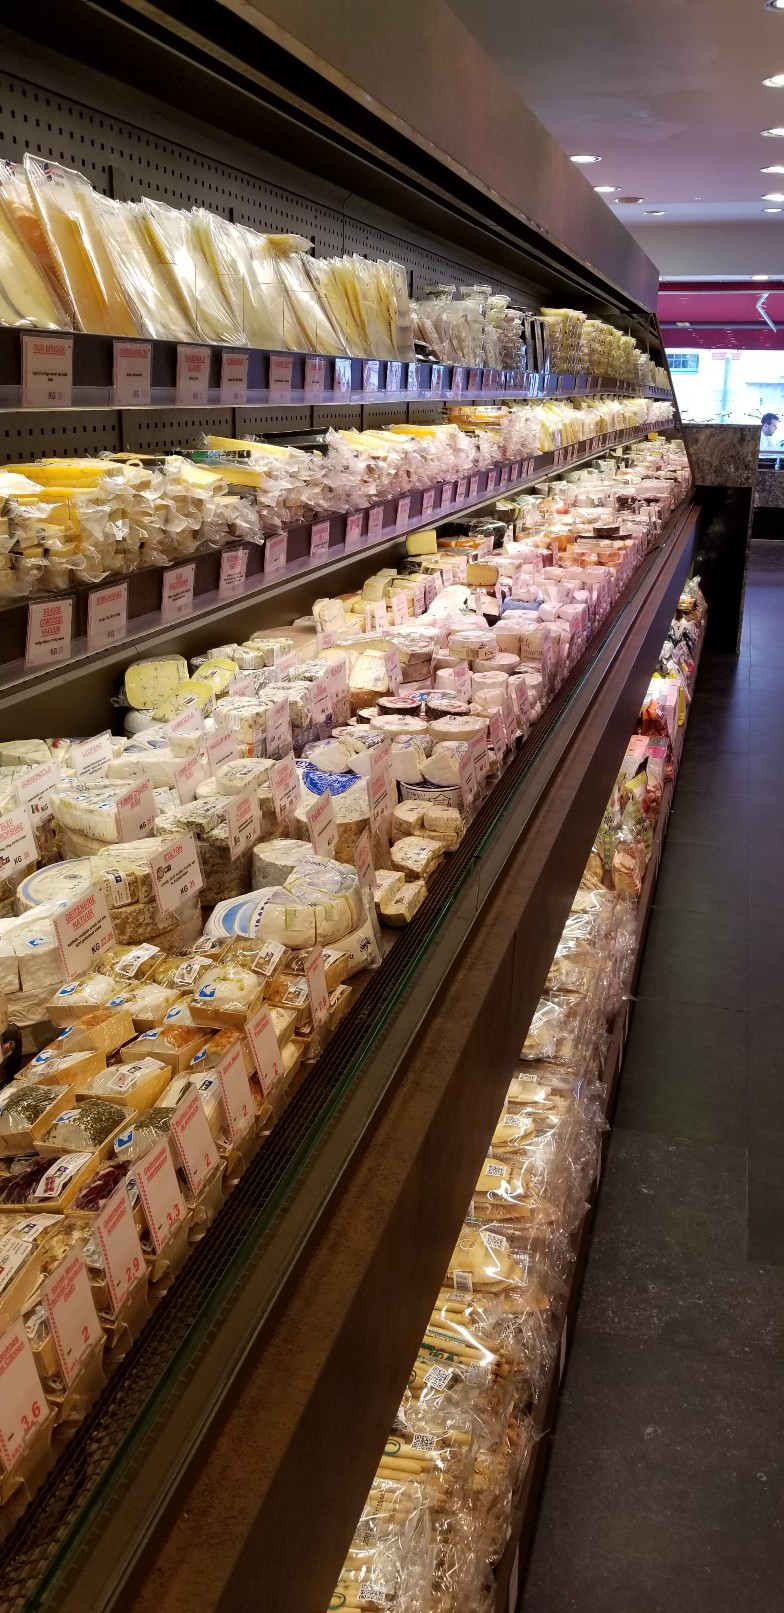 European Supermarket Cheese Case